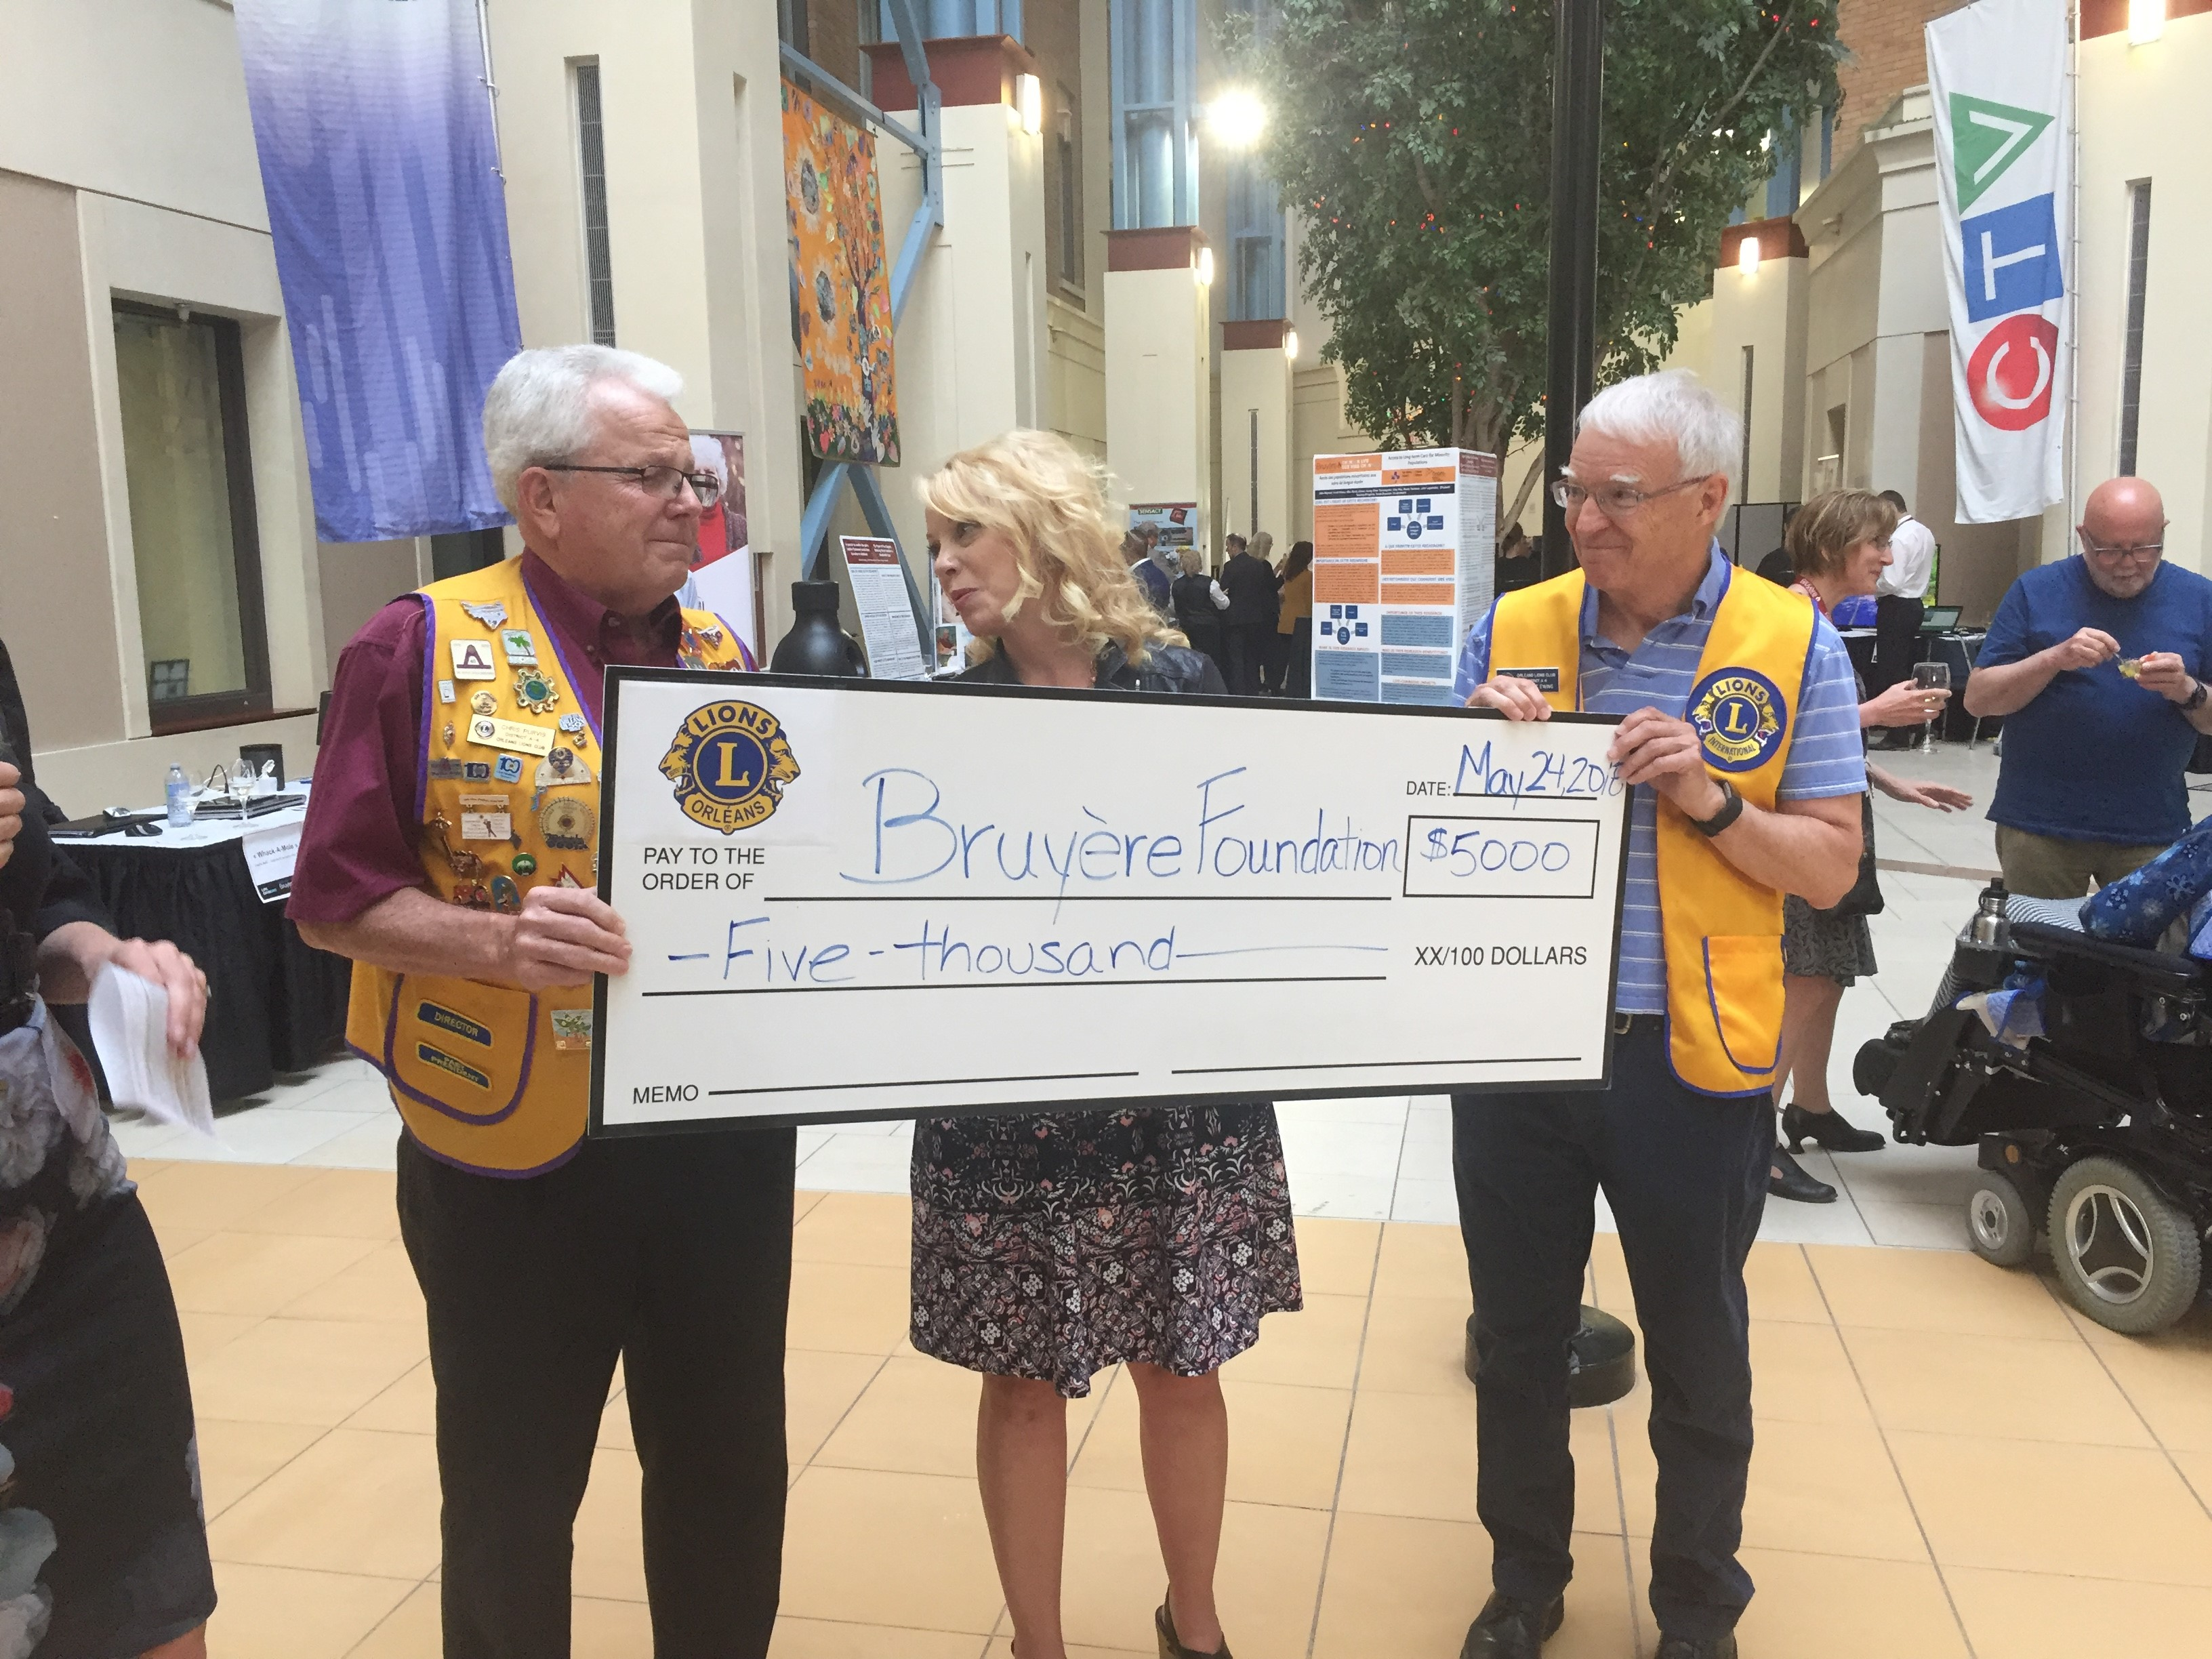 Cheque to Bruyere May 18